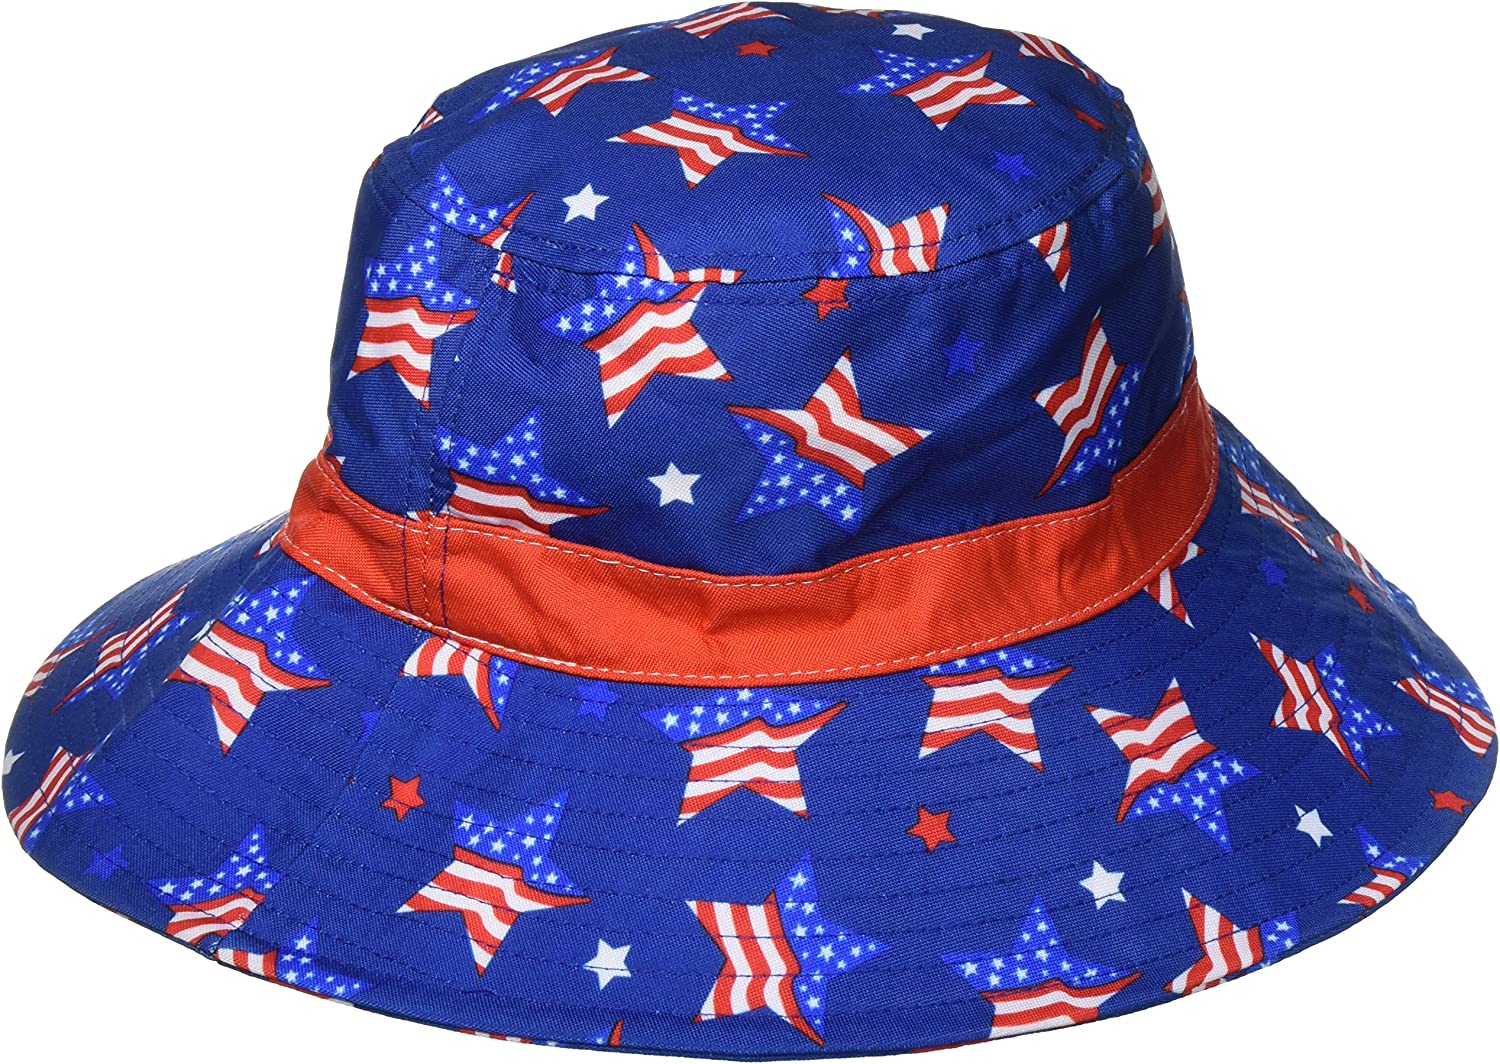 Amscan American Summer Fourth of July Women's Patriotic Bucket Hat Accessory Fabric 4  x 10  Costume for Kids